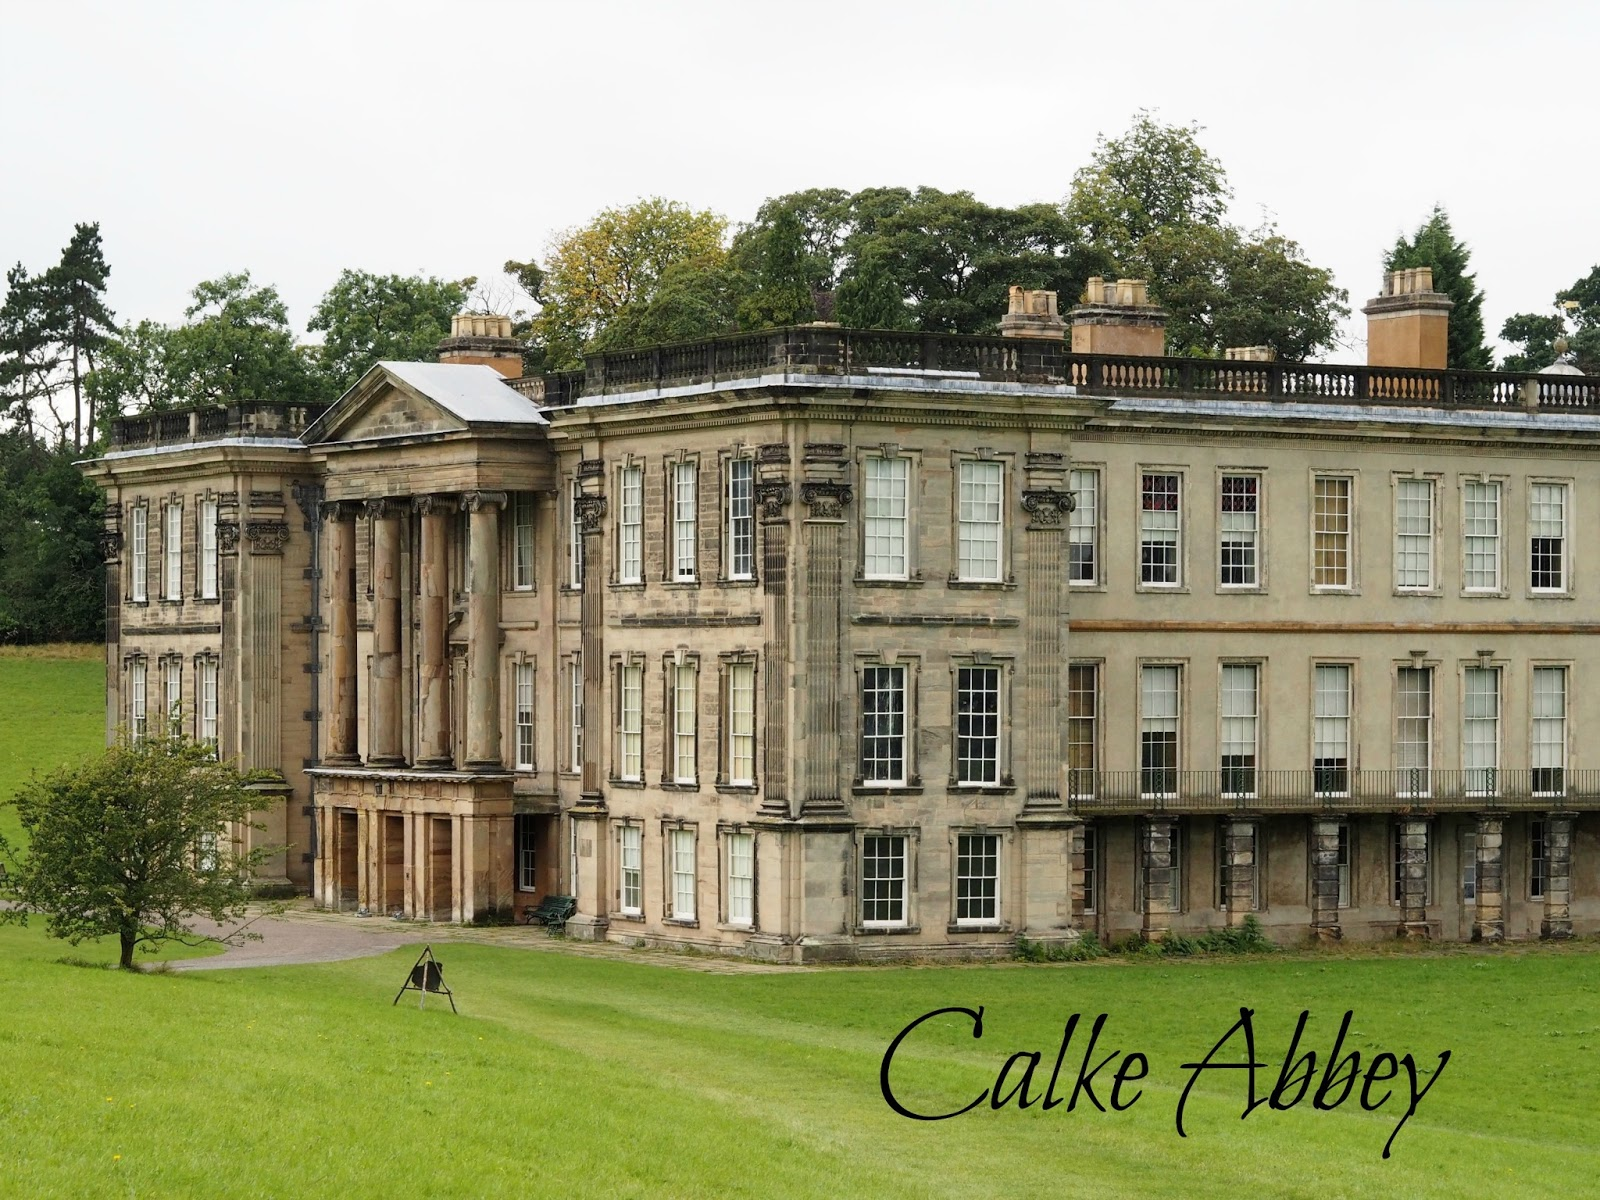 Calke Abbey National Trust Priceless Life of Mine